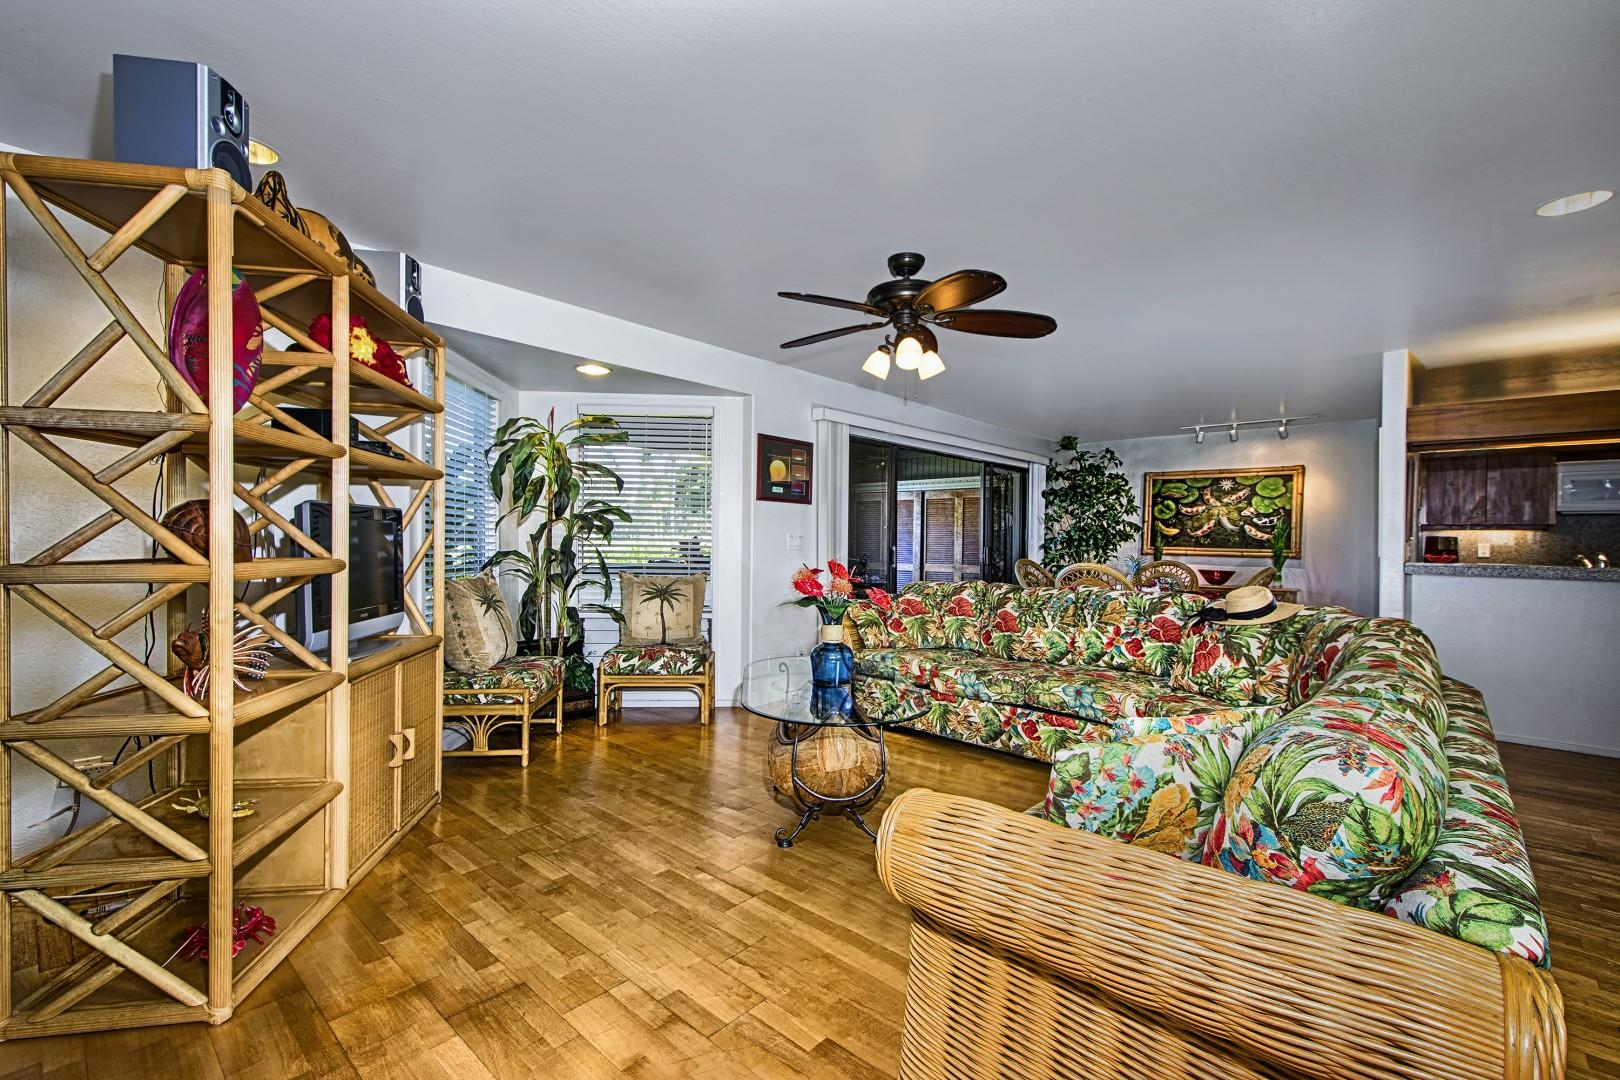 Enjoy central A/C in every room of this condo!